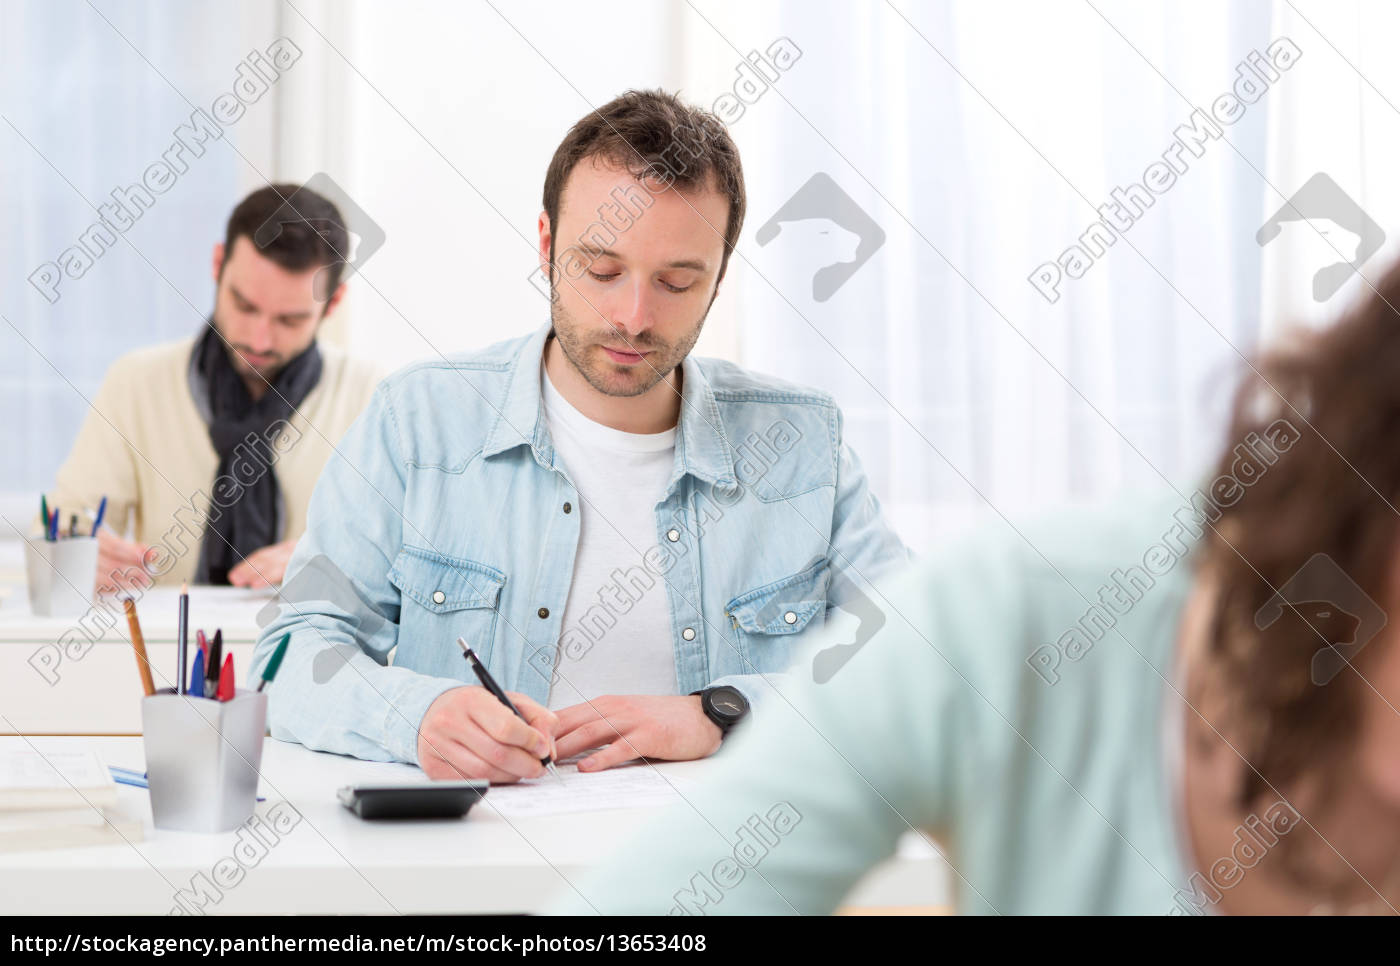 young, attractive, man, taking, exams - 13653408